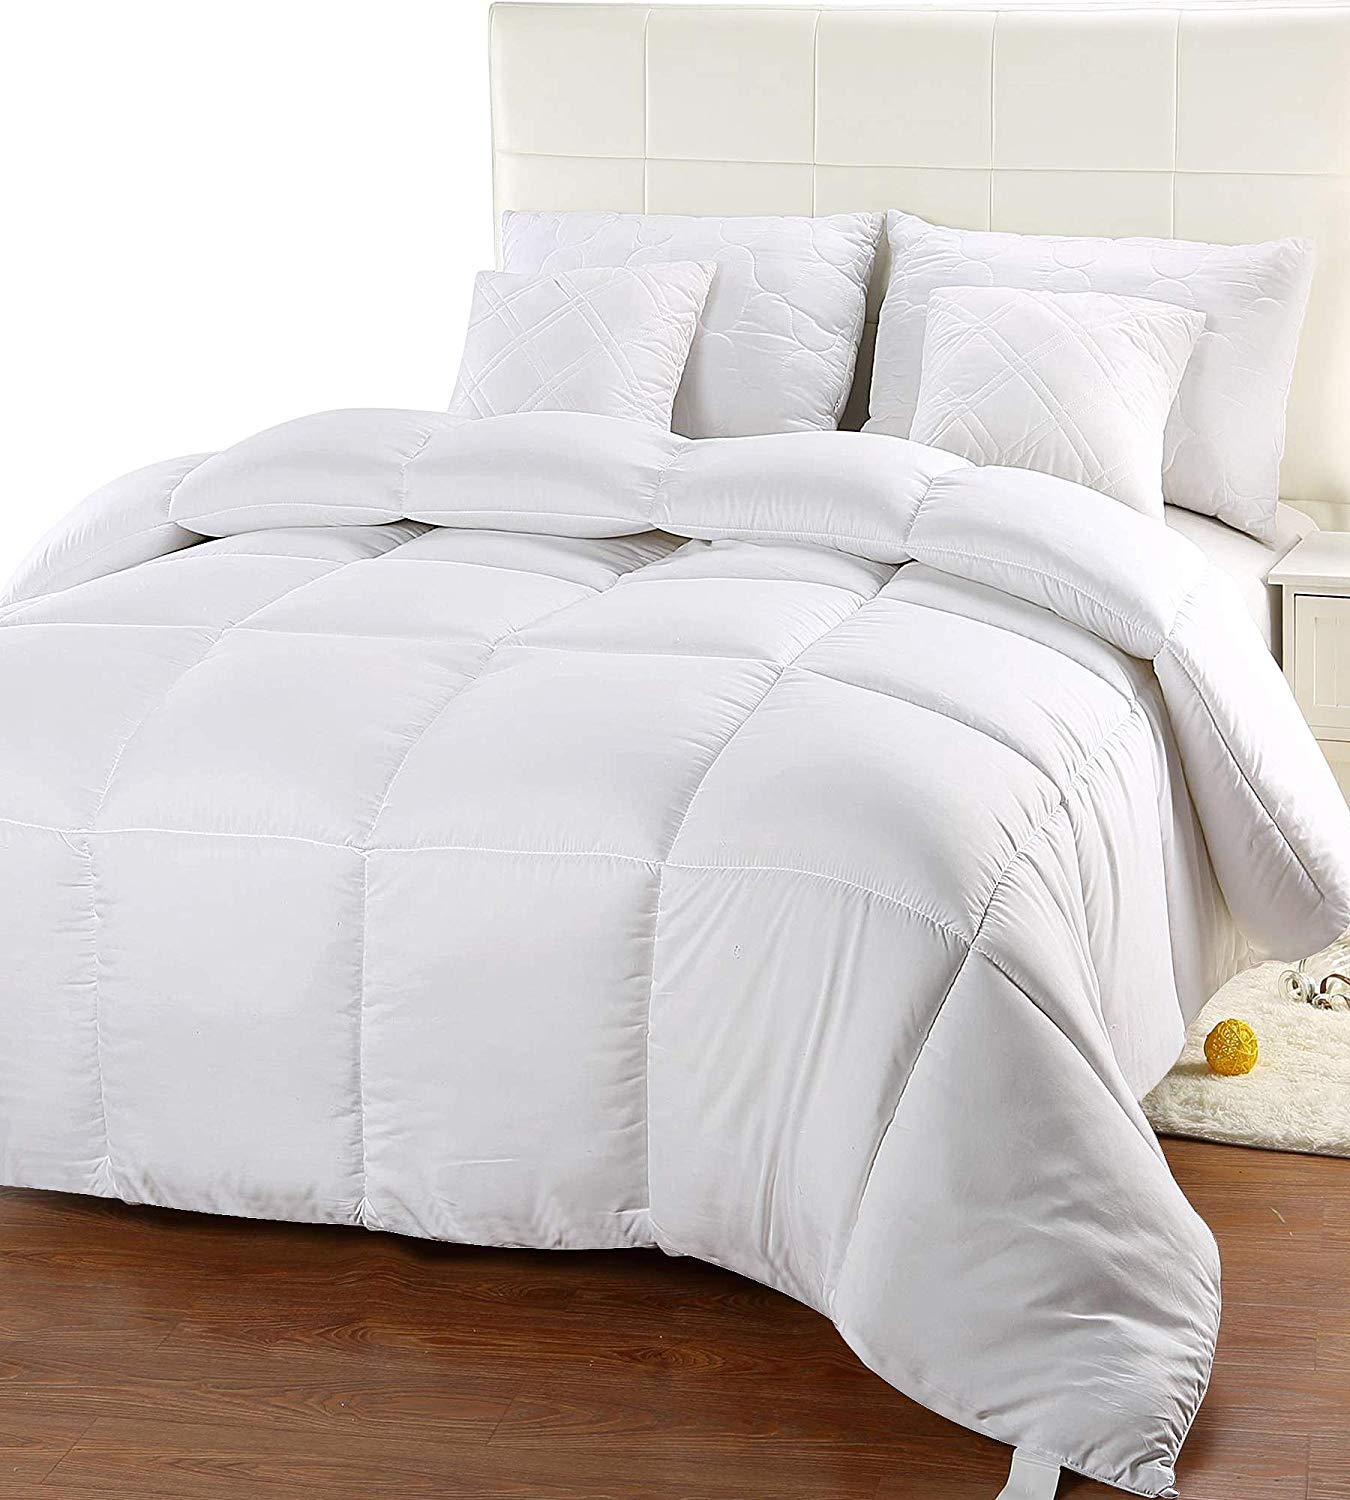 Utopia Bedding Comforter Duvet vs Comforter Review by www.snoremagazine.com